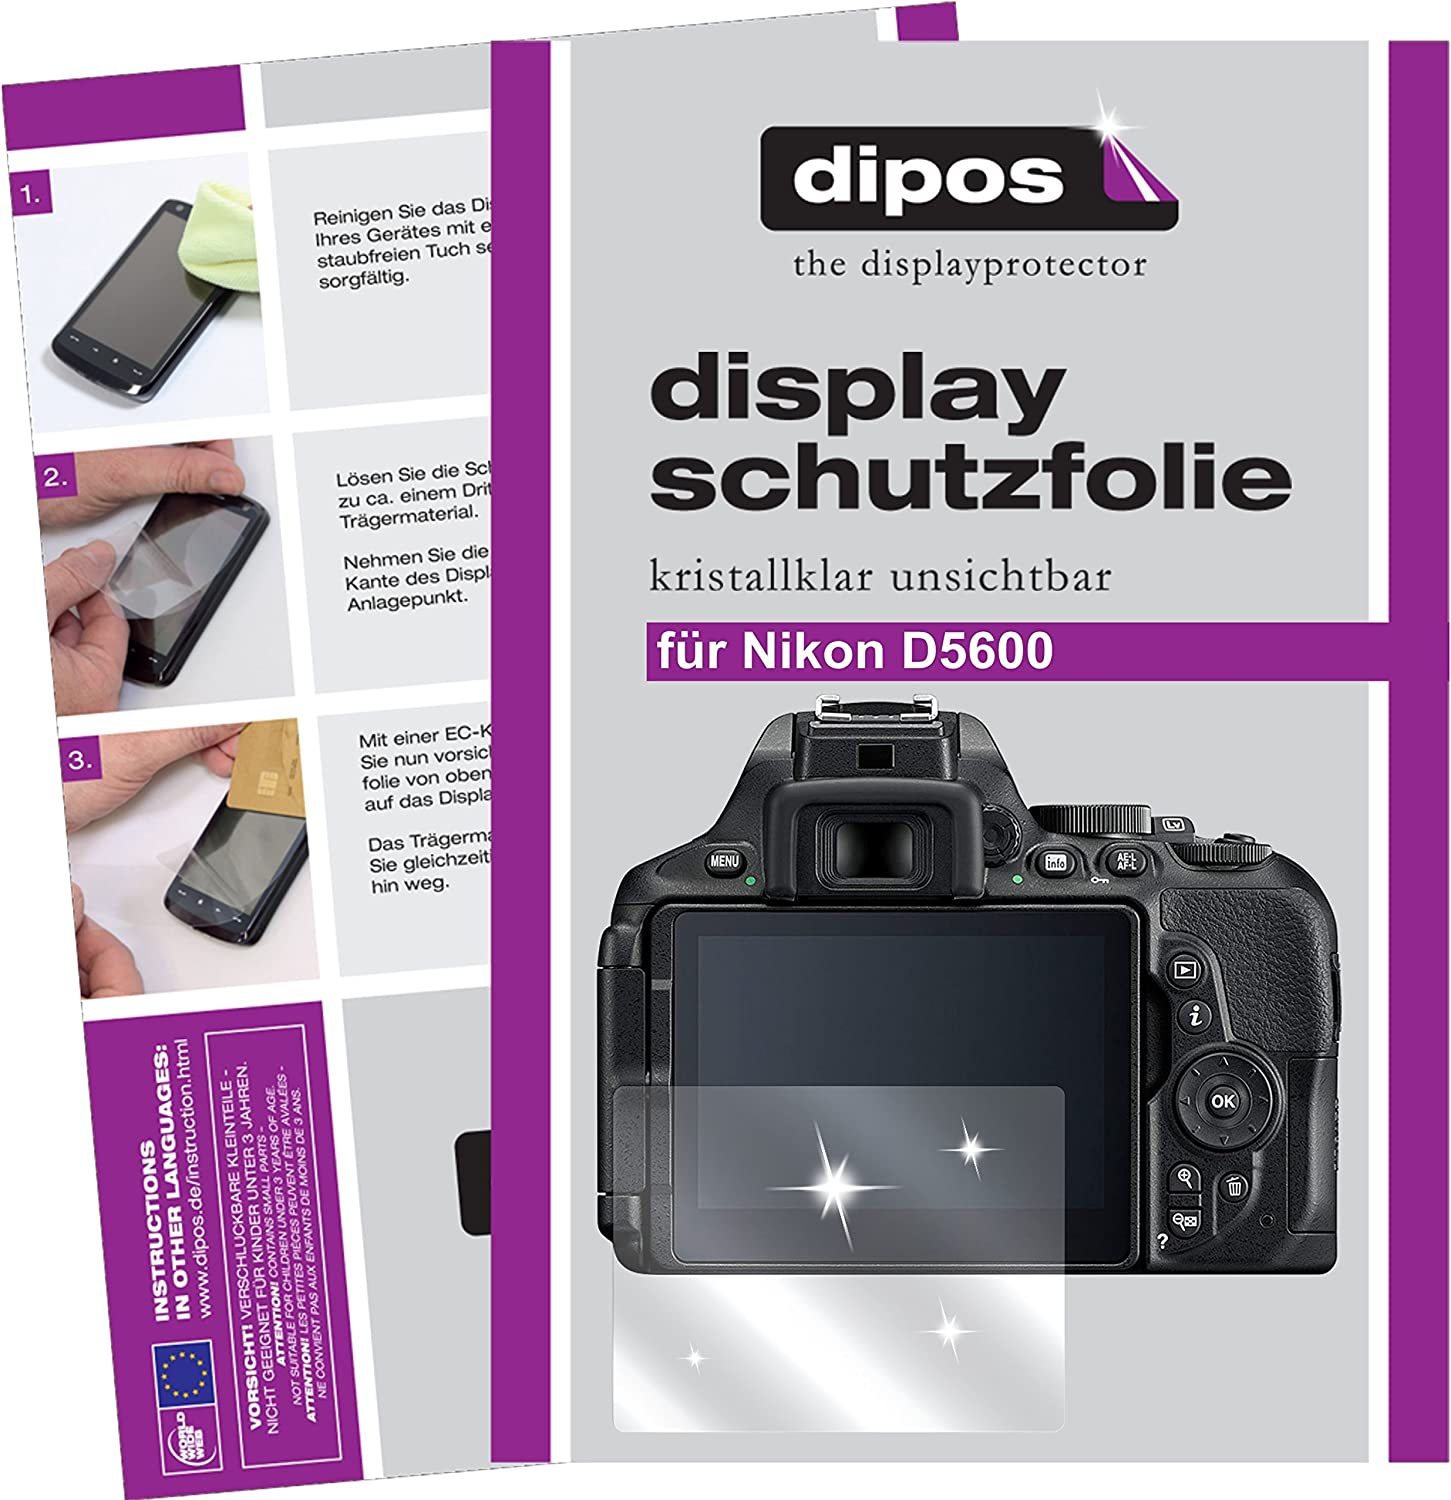 Dipos Crystalclear Screen Protectors For Different Computers Accessories